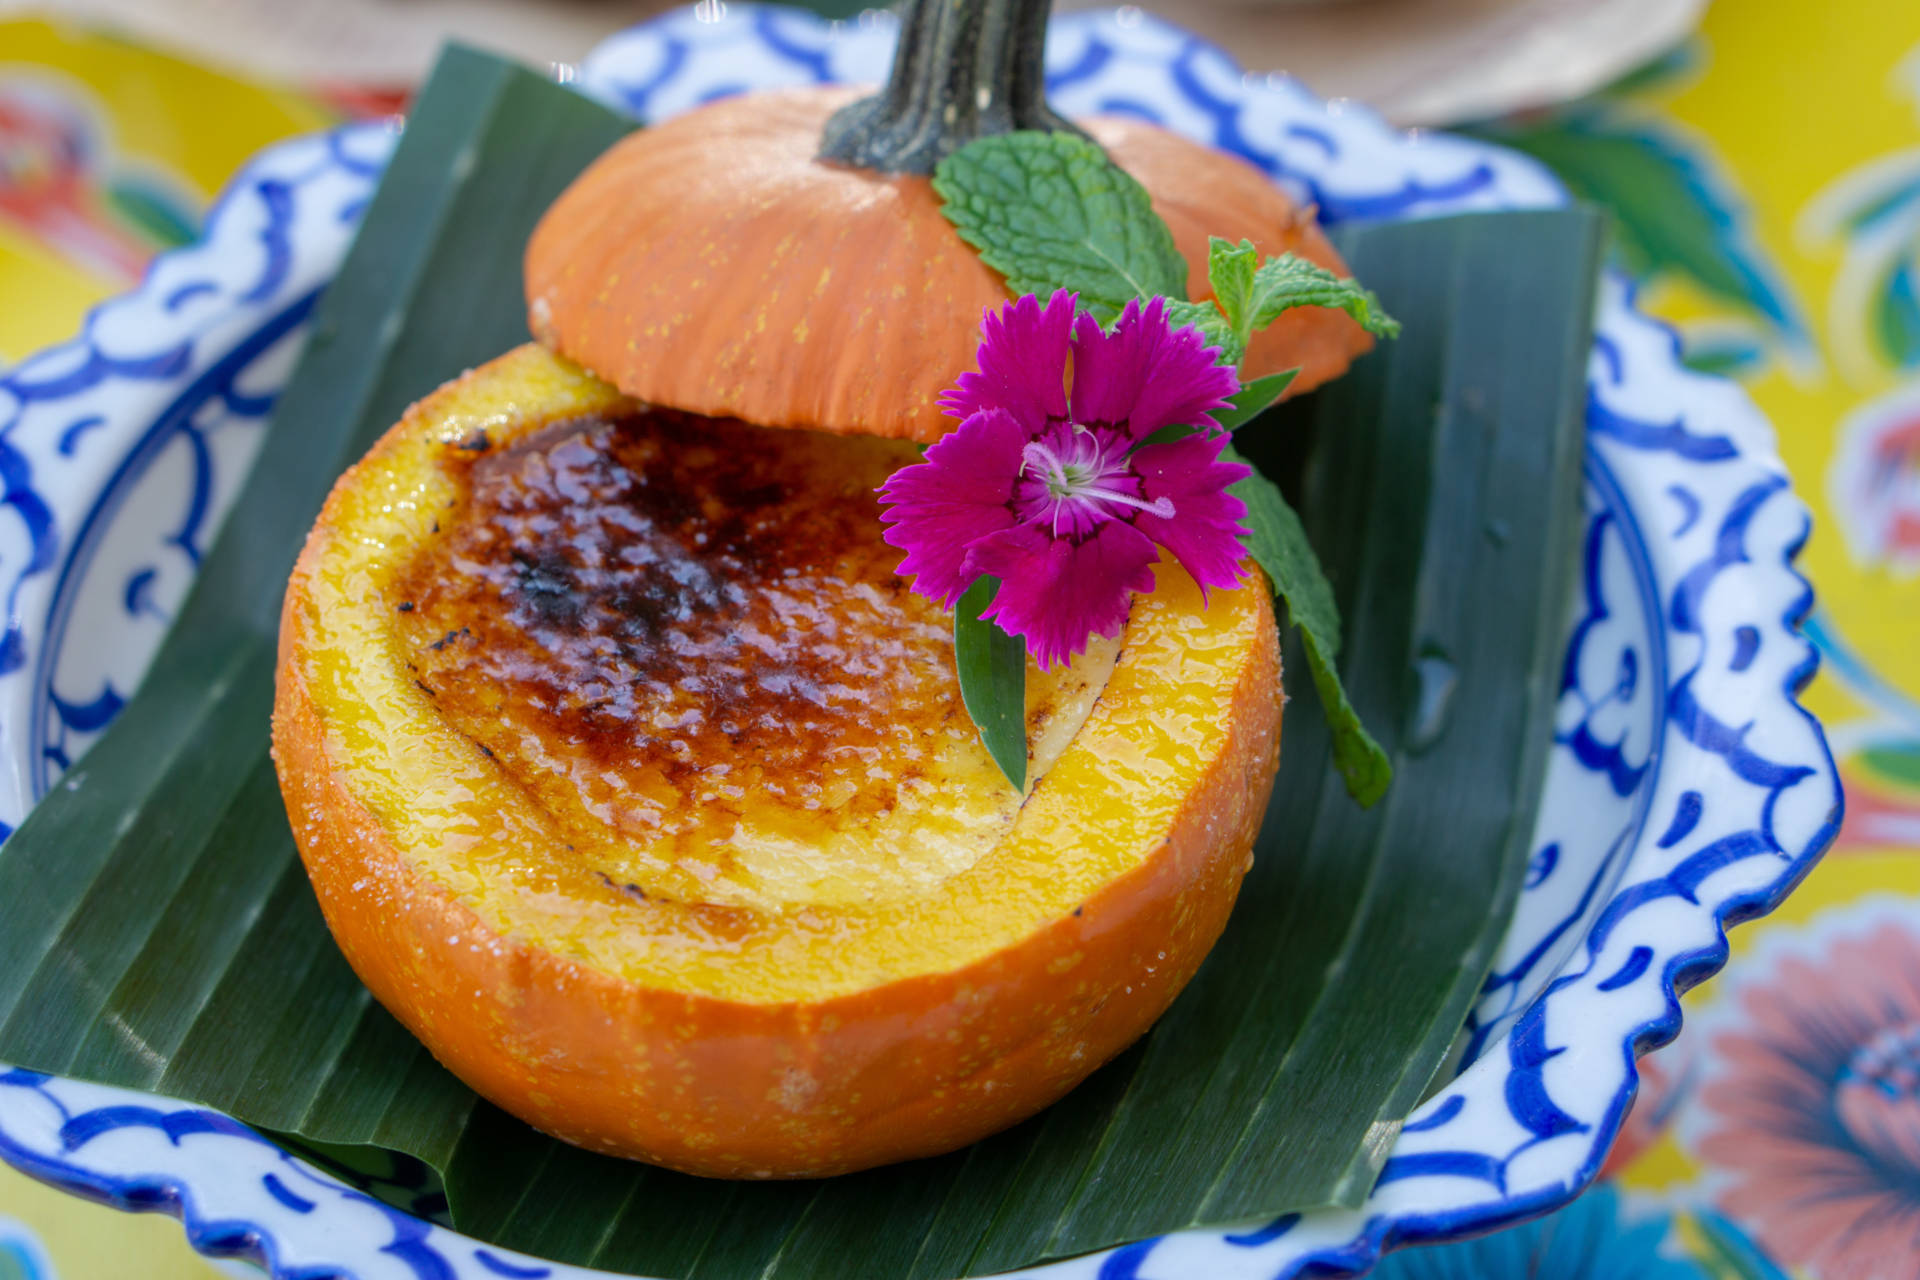 Pumpkin Creme Brulee is served up in a real pumpkin, dainty and delicious.